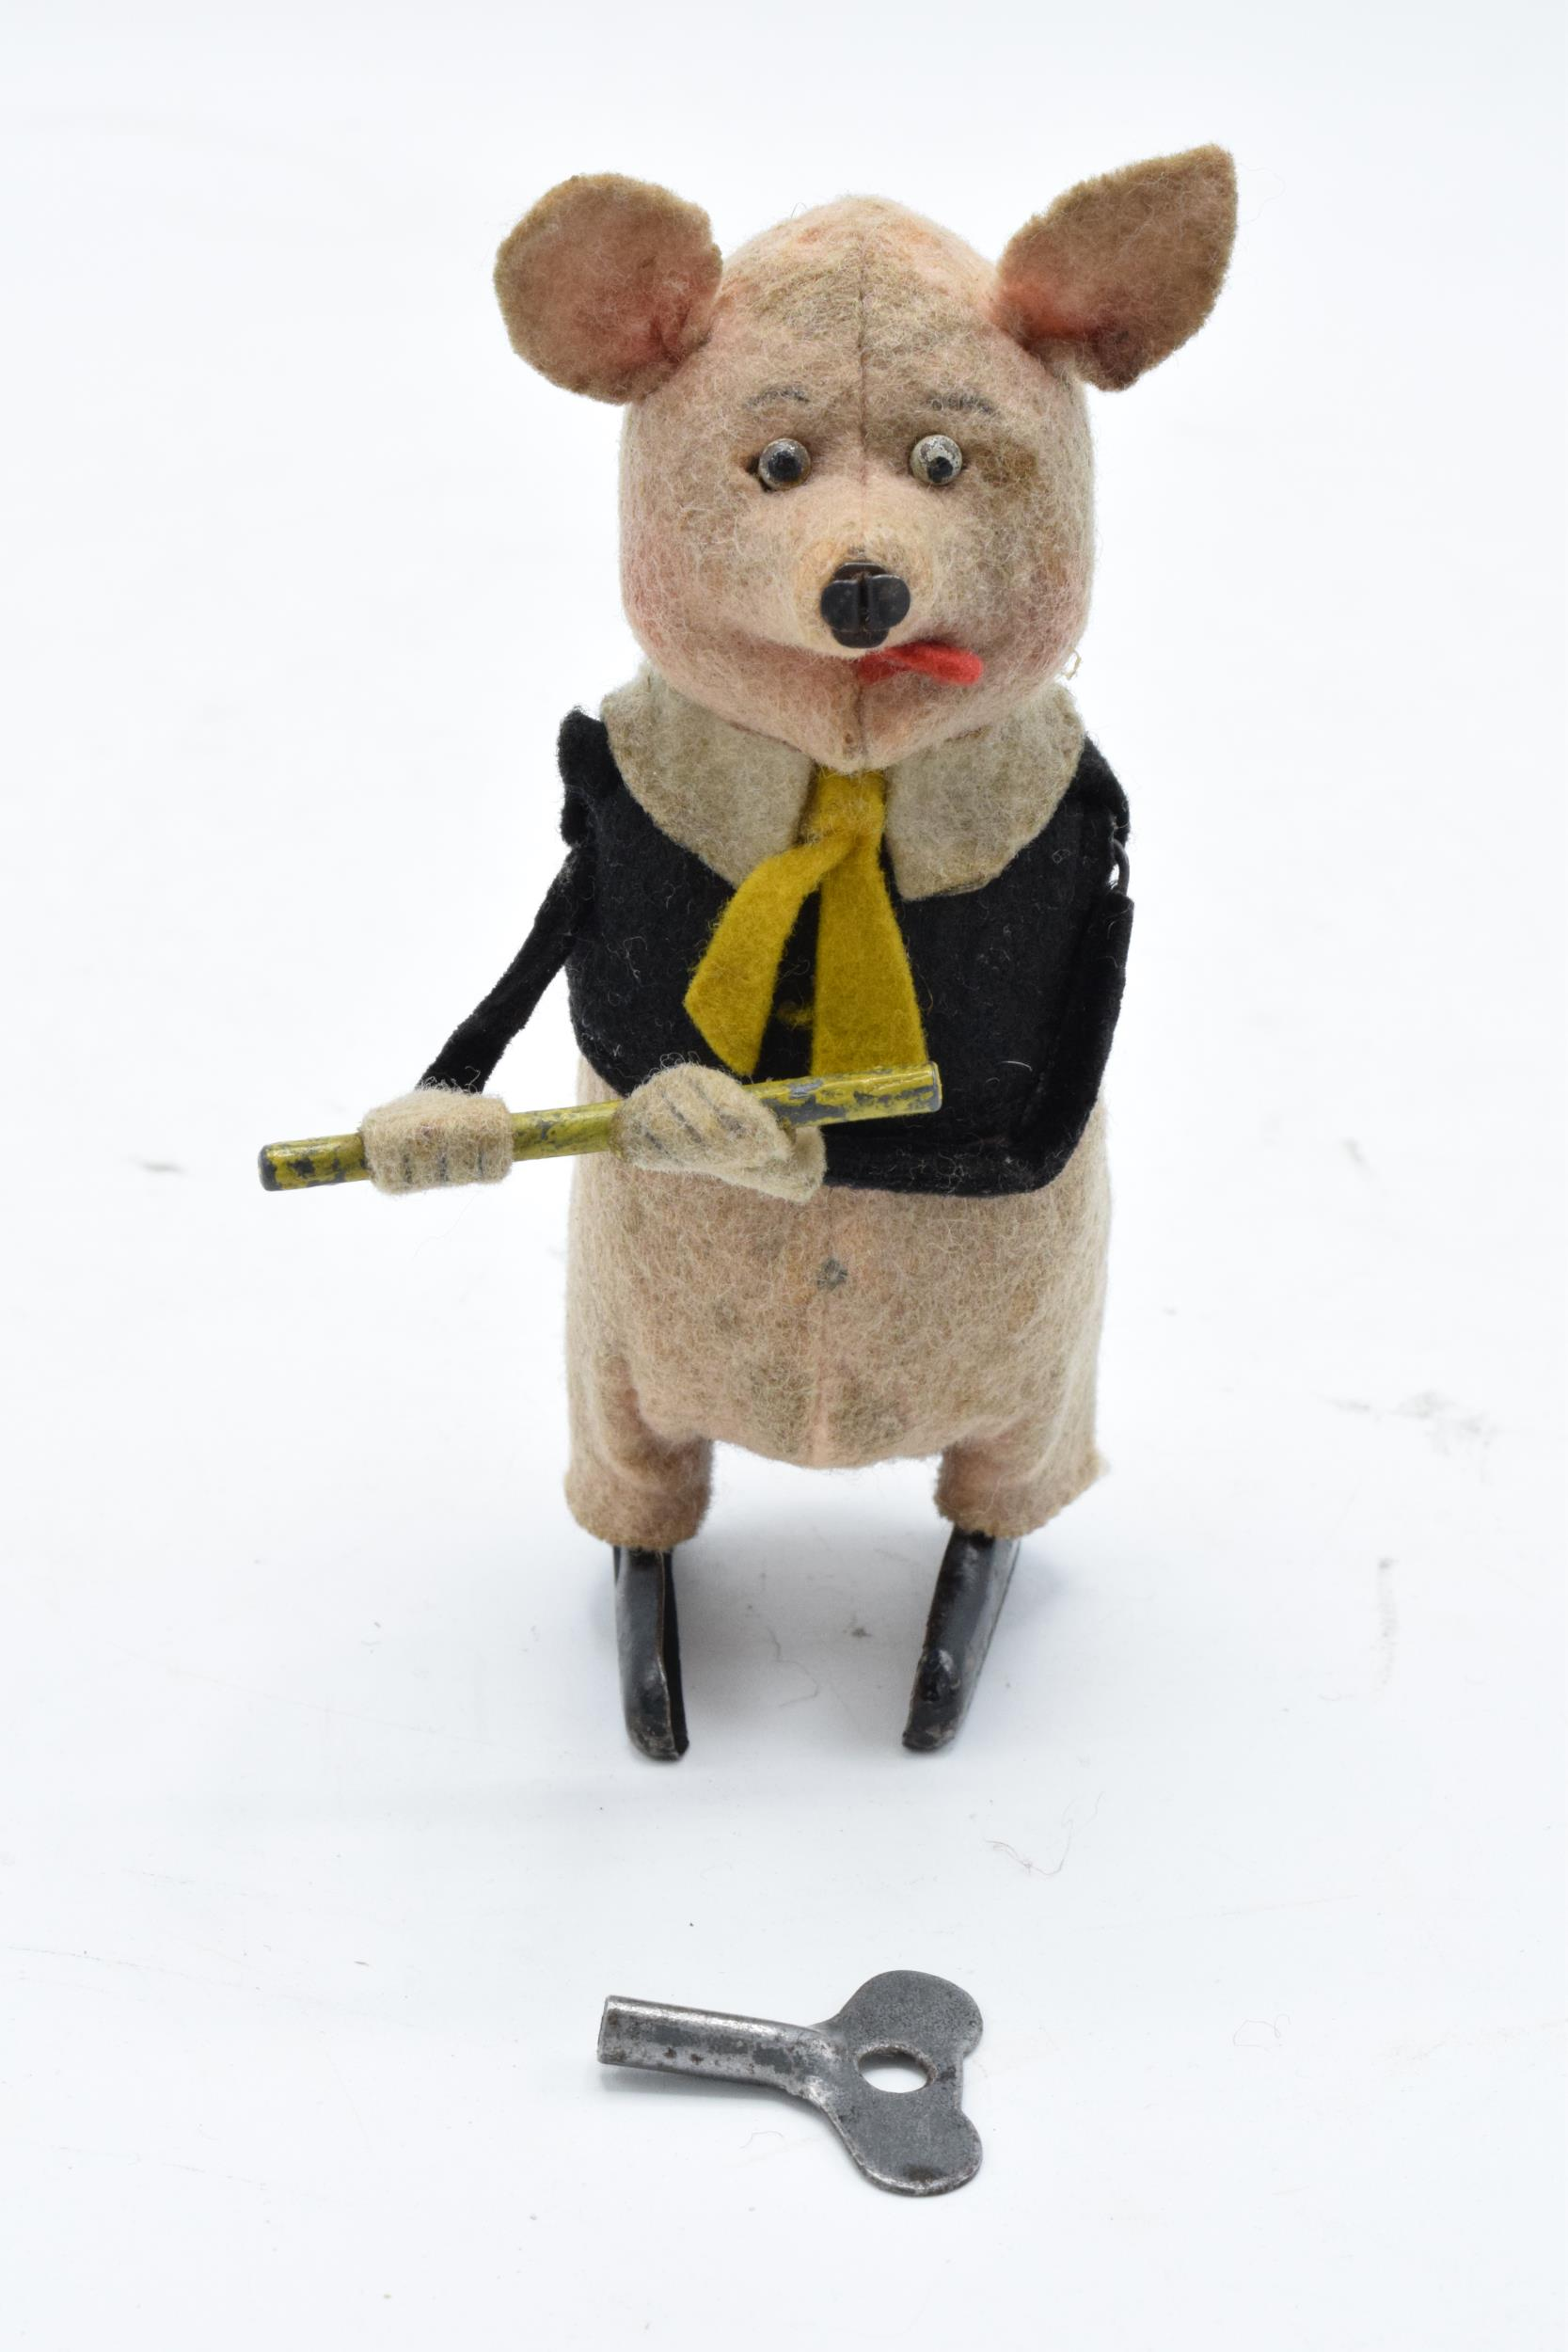 A Schuco circa 1930s clockwork toy figure in the form of a pig with a flute (with key). Based on the